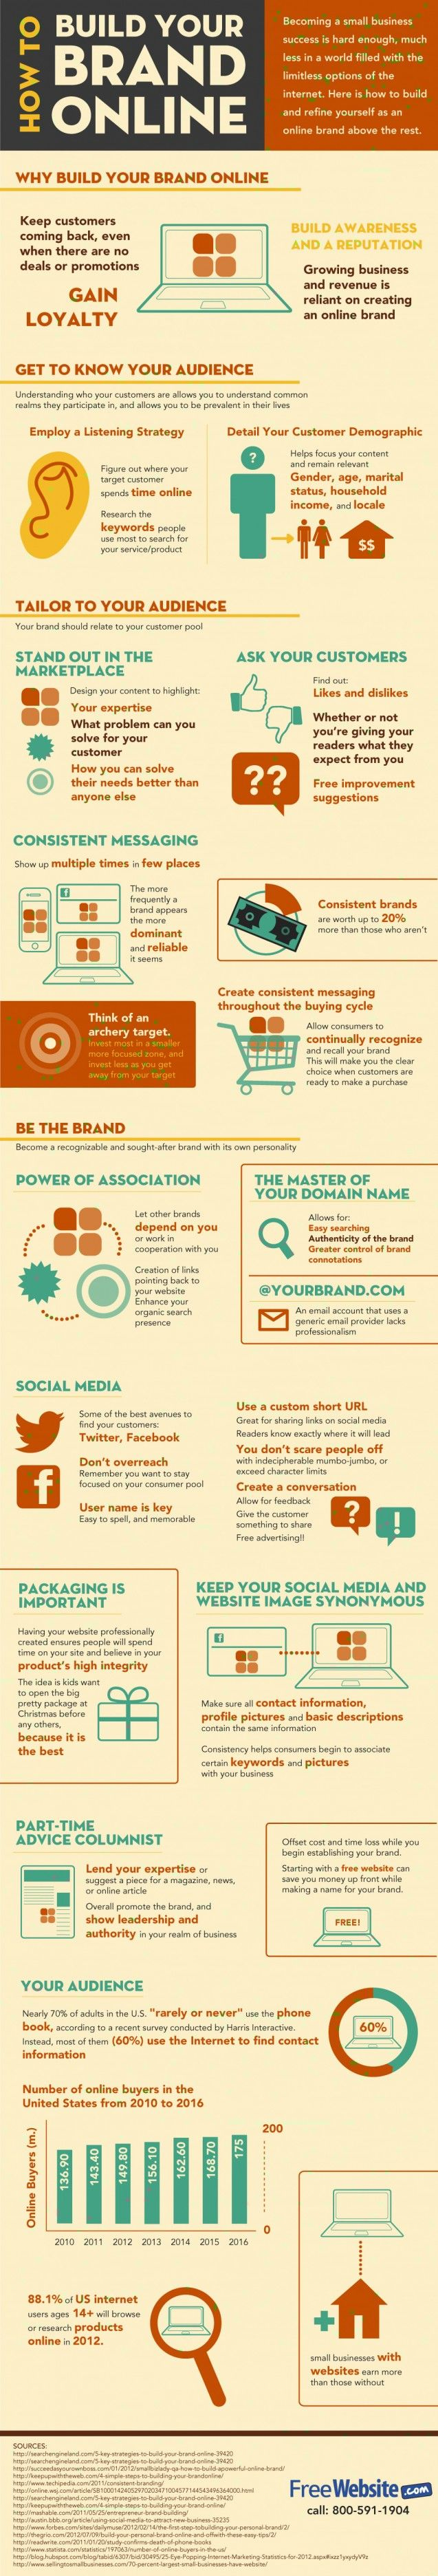 How To Effectively Build Your Brand Online #infographic http://fleetheratrace.blogspot.co.uk/ internet, digital #business tips and tricks #marketing